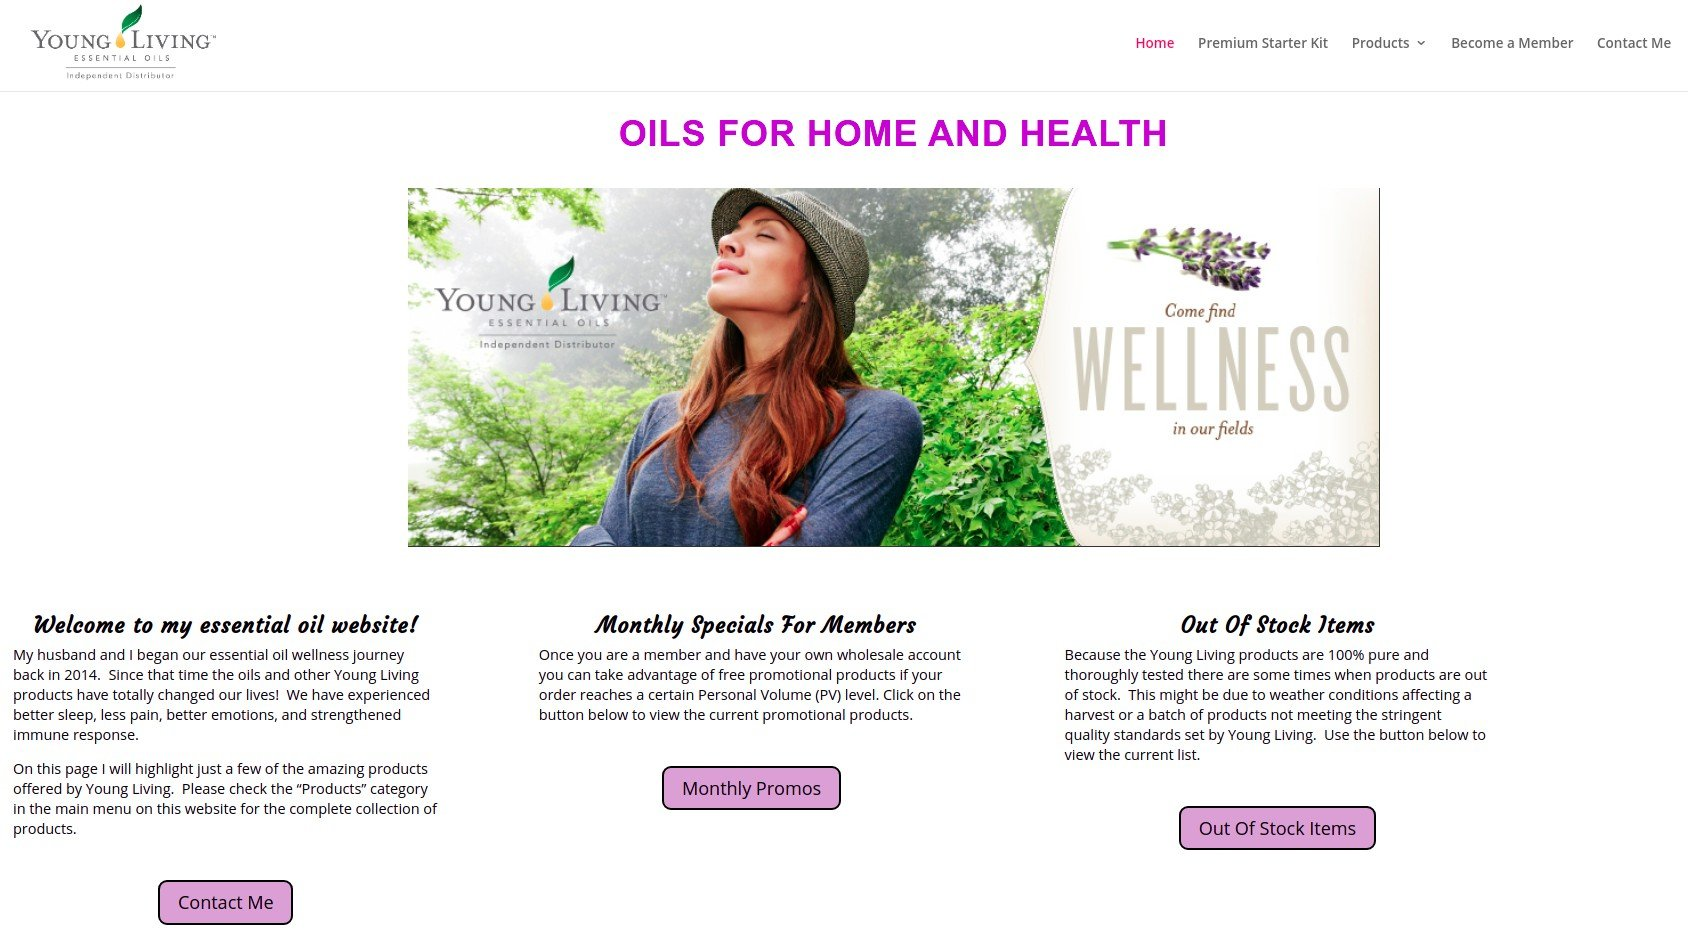 Oils For Home And Health Website